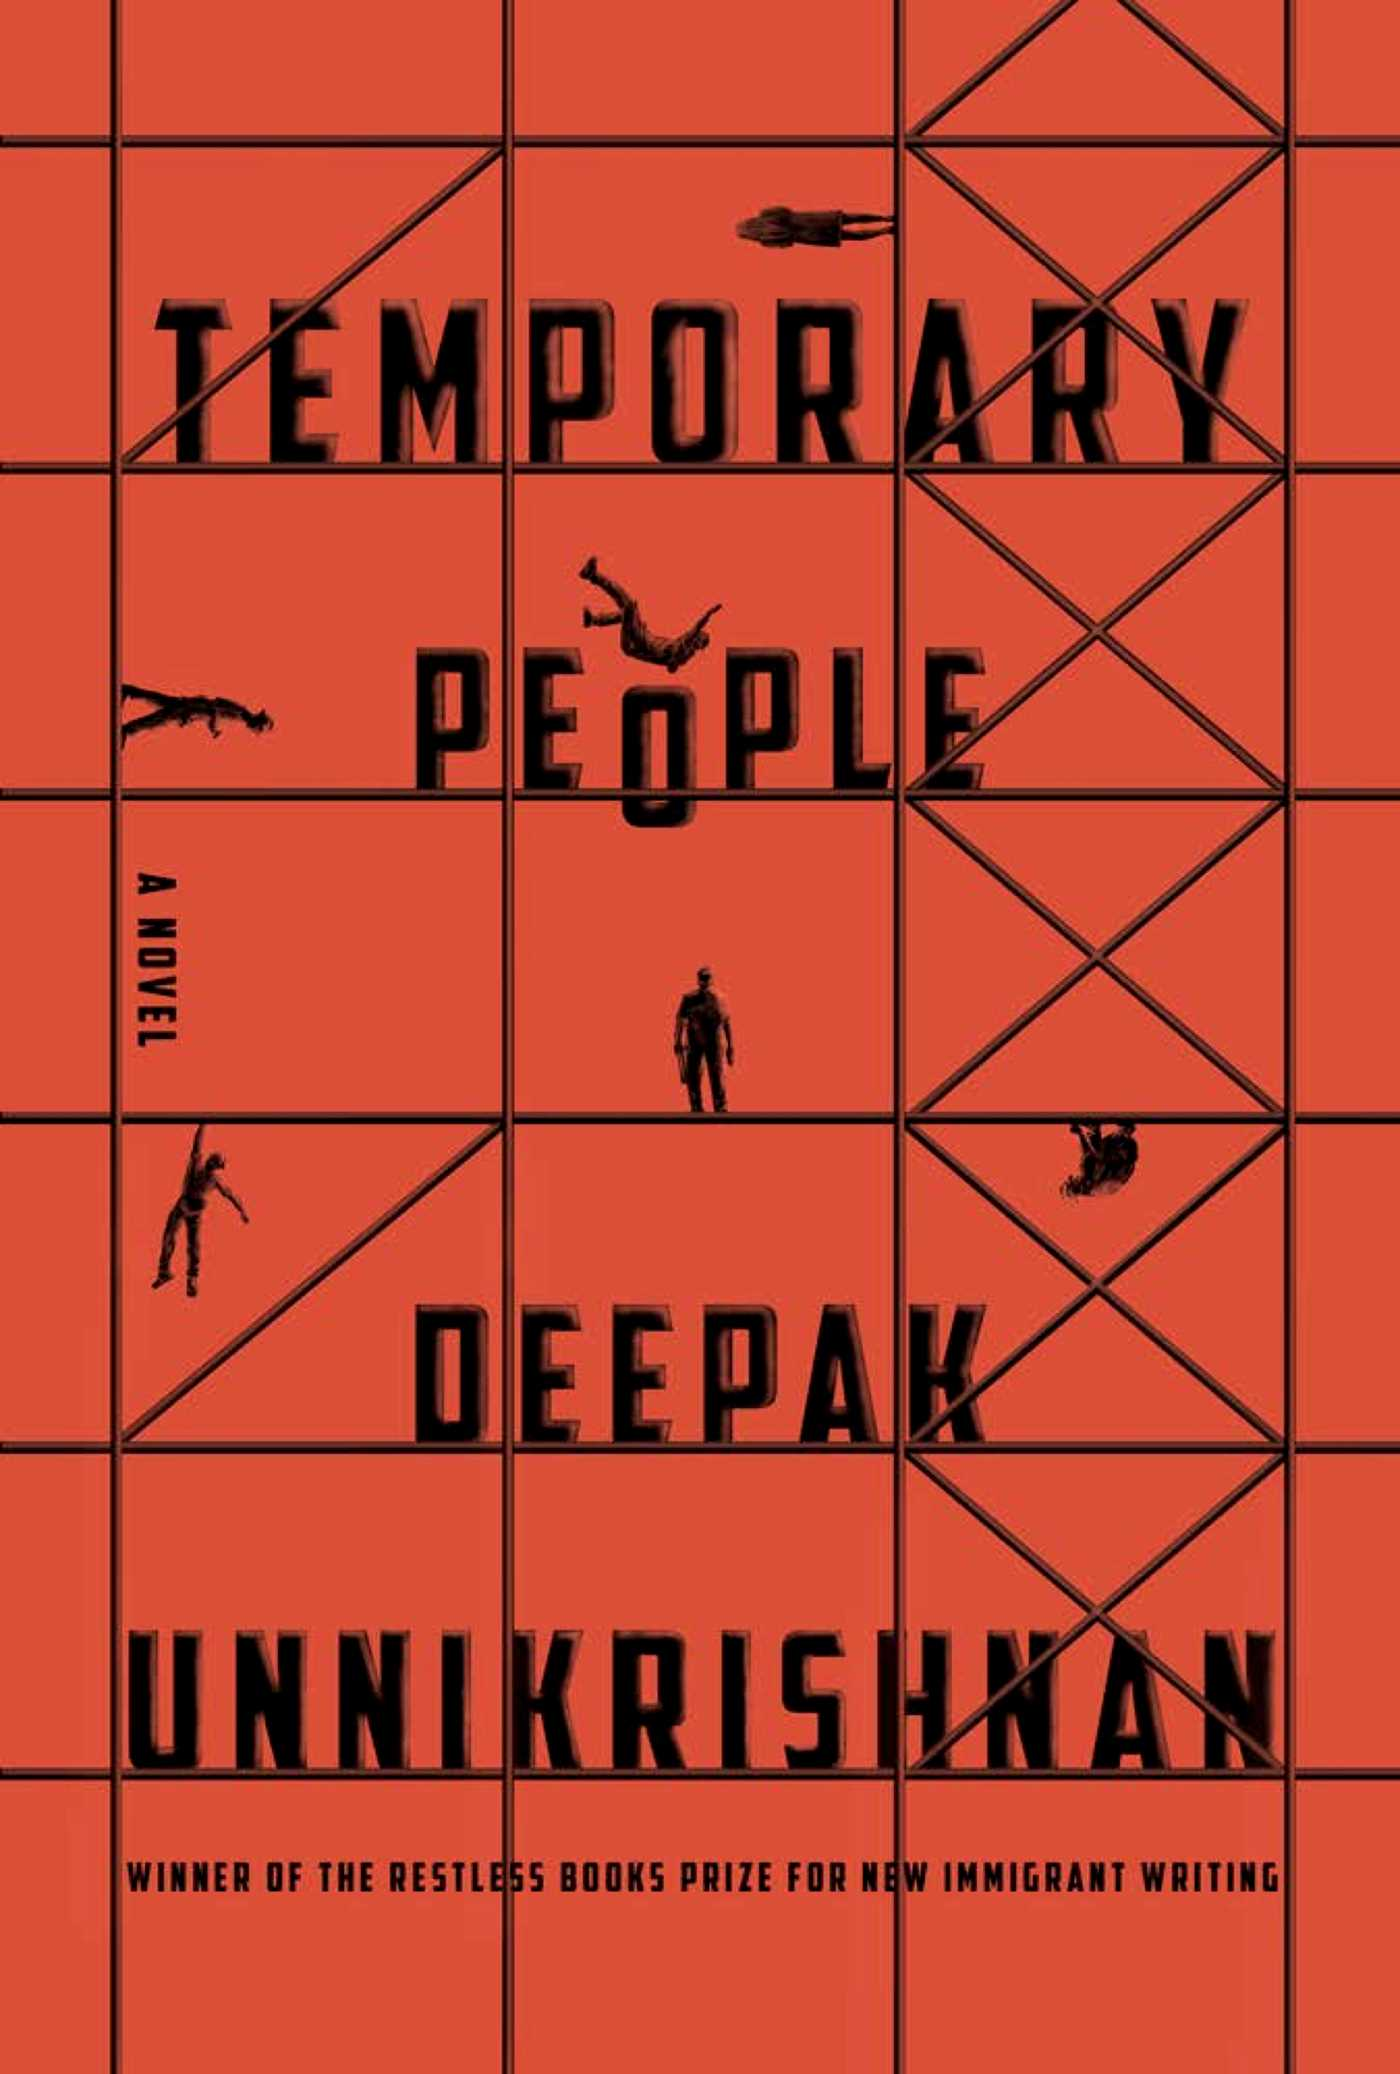 Deepak Unnikrishnan <em>Temporary People</em> Restless Books (USA), 2017